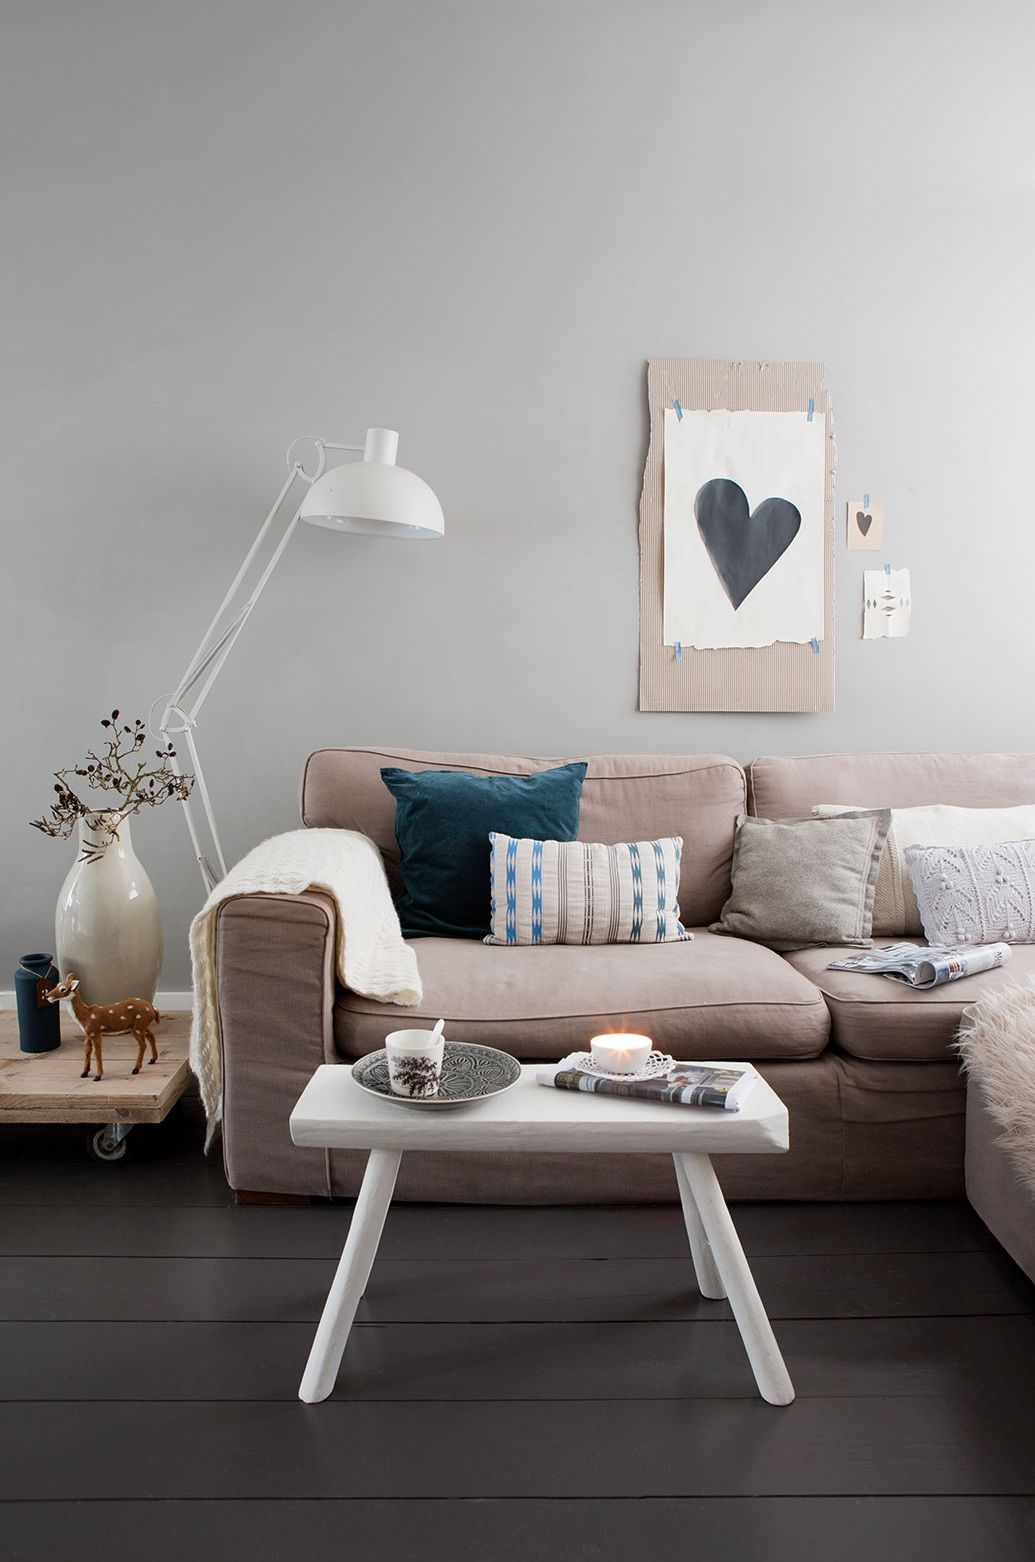 neutral colored living room and of course a heart on the wall